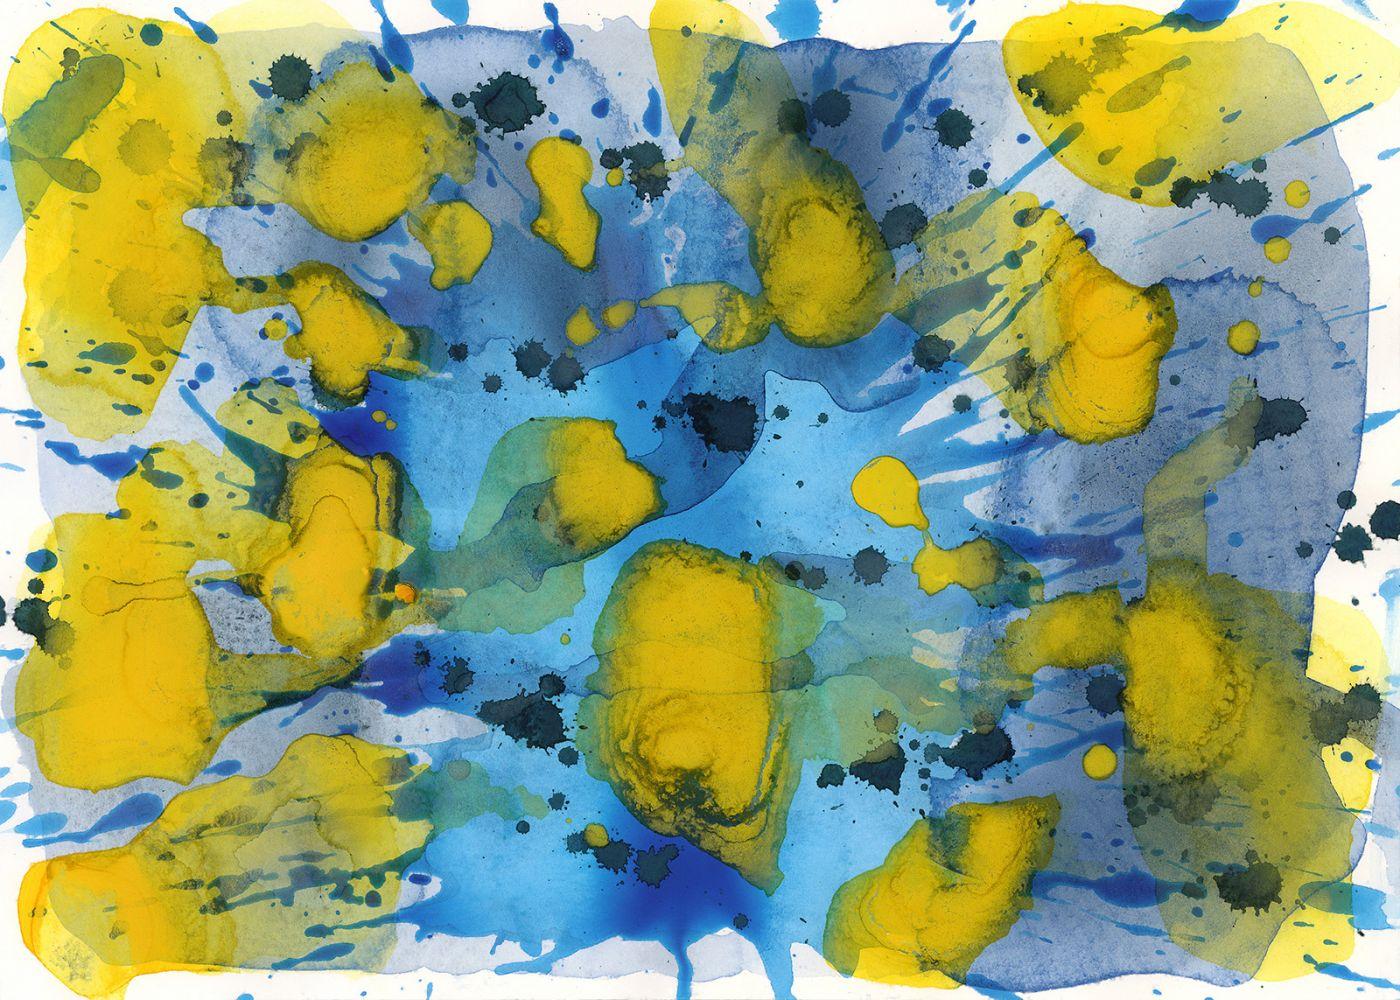 J. Steven Manolis, Splash (Sun and Water), 2006, Watercolor on paper, 10 x 14 inches, Abstract expressionism paintings for sale at Manolis Projects Art Gallery, Miami, Fl